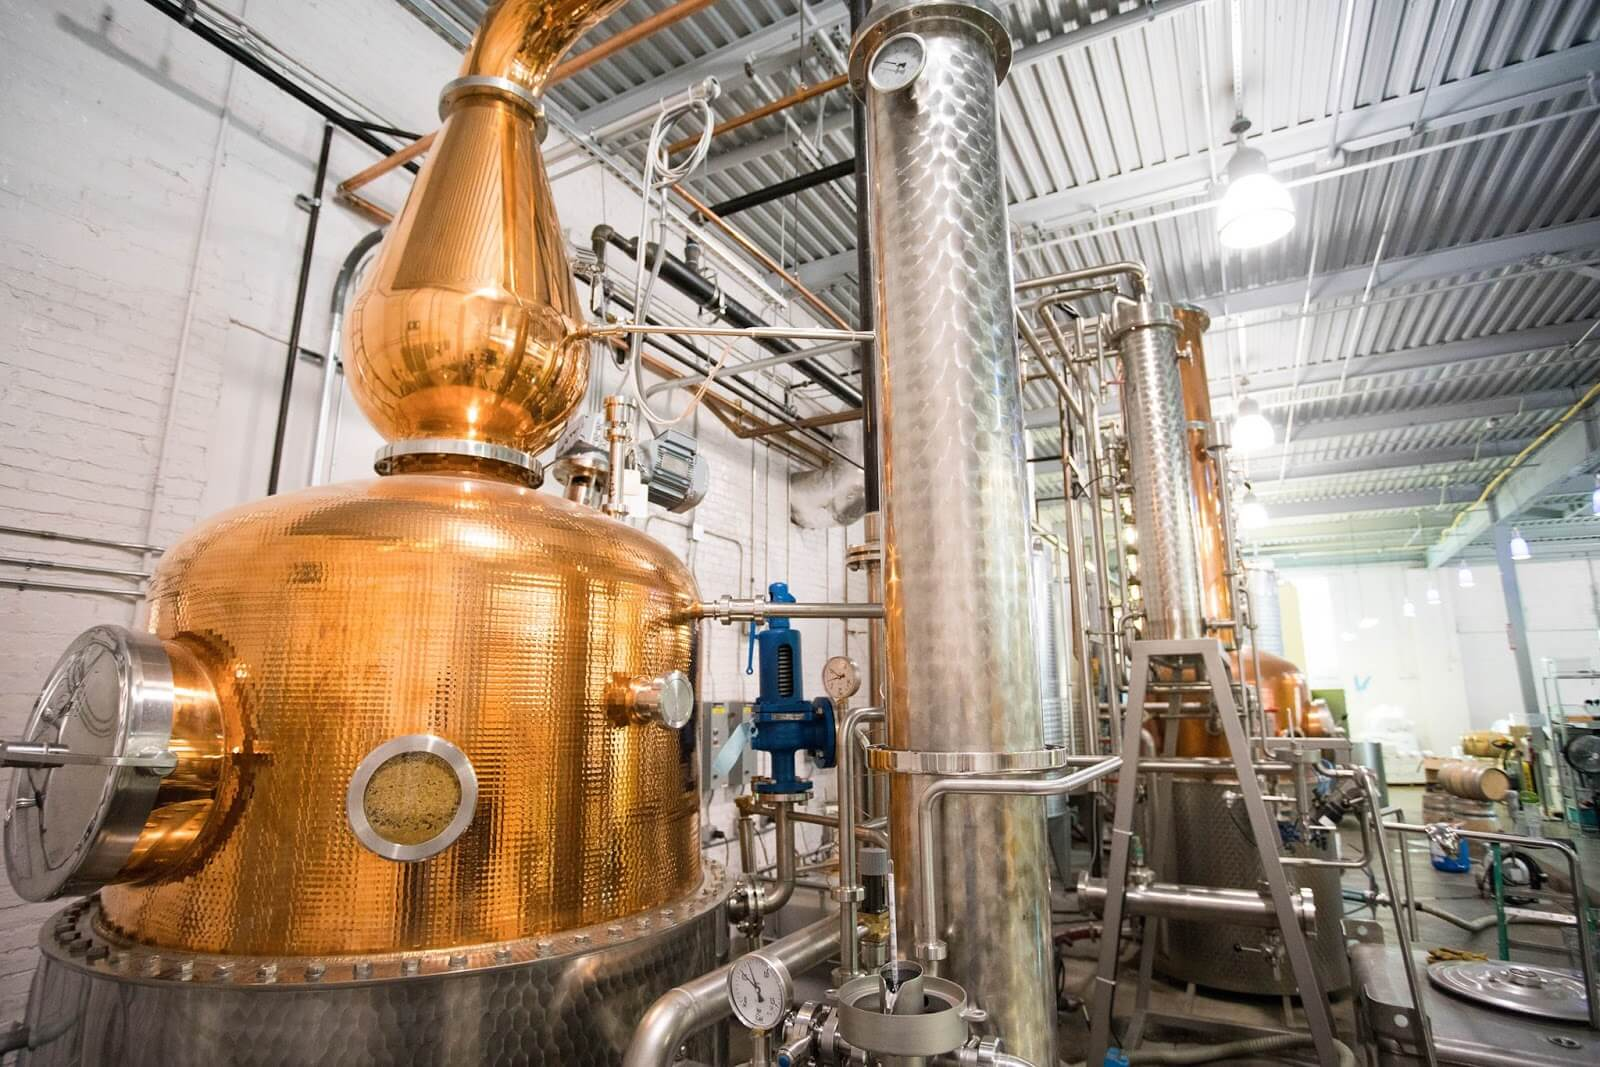 Sweetheart Distillery Tour